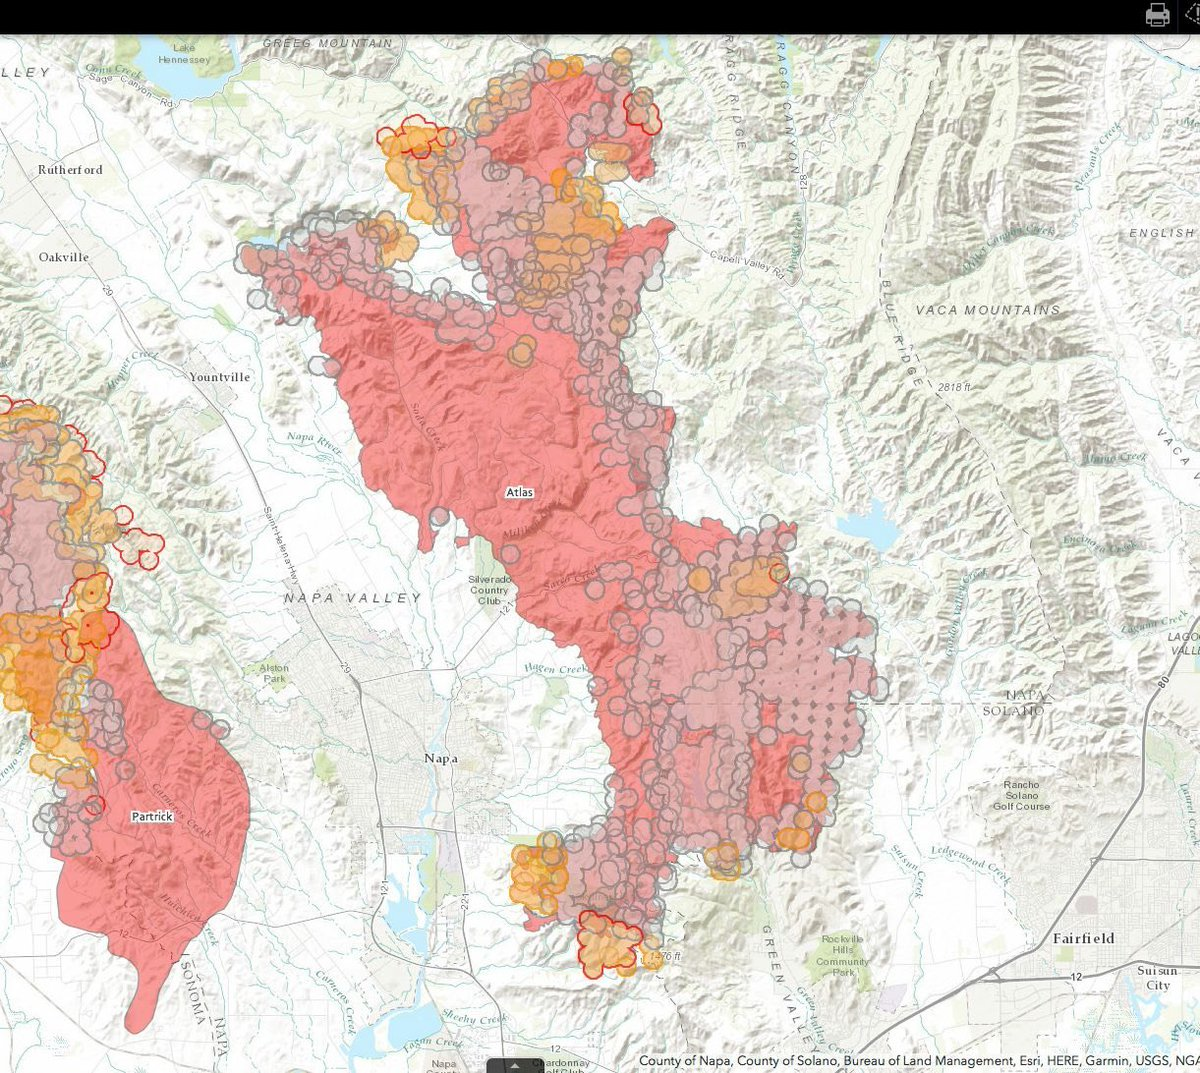 Eric S Neitzel On Twitter Winecountryfires Maps Good Numbers